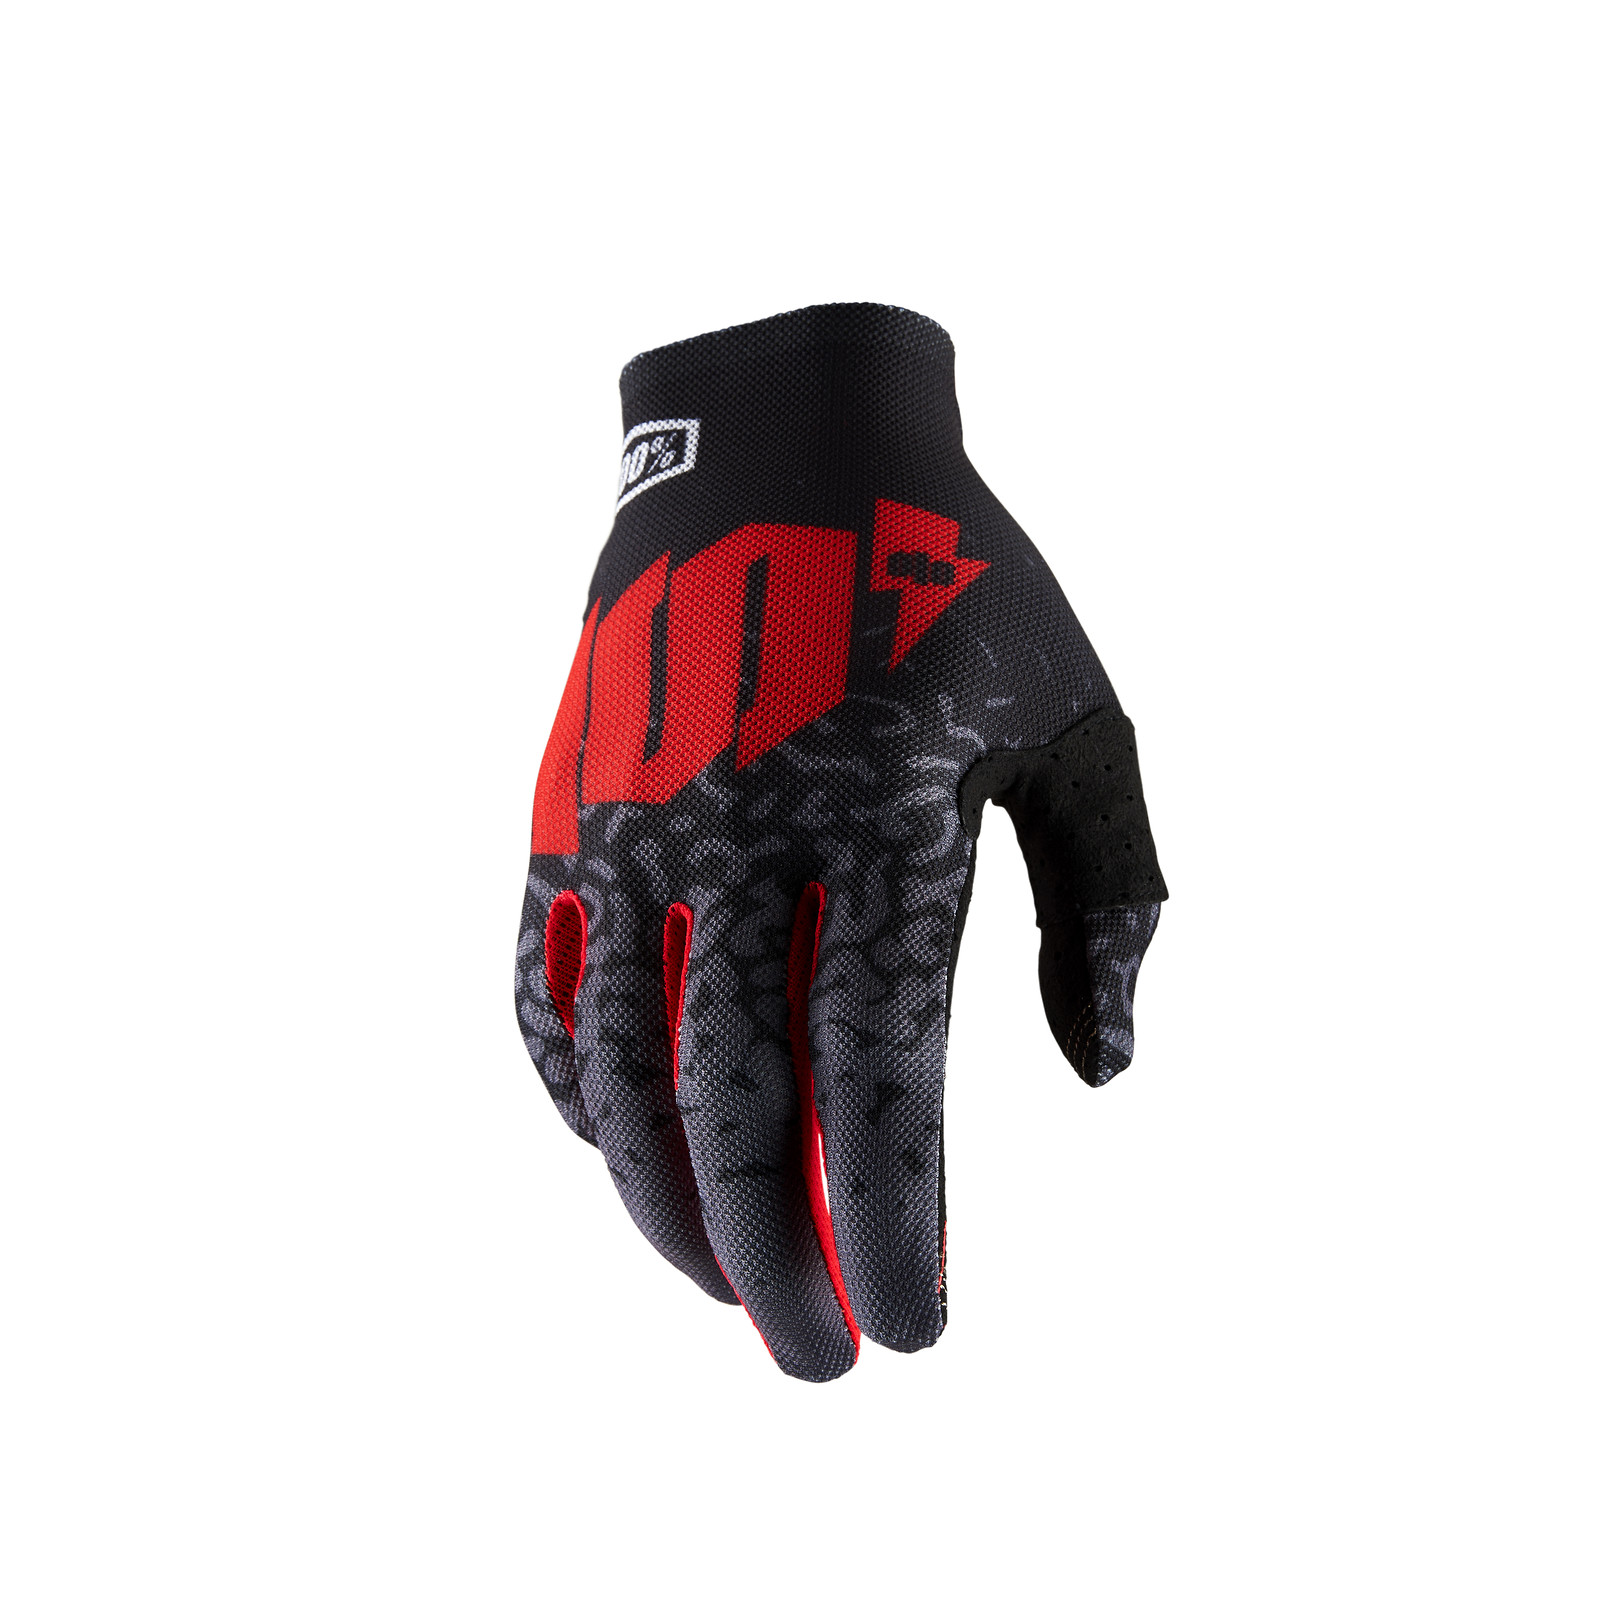 Celium 2 Glove - Metal / Black - 100percent - Motocross Pictures - Vital MX